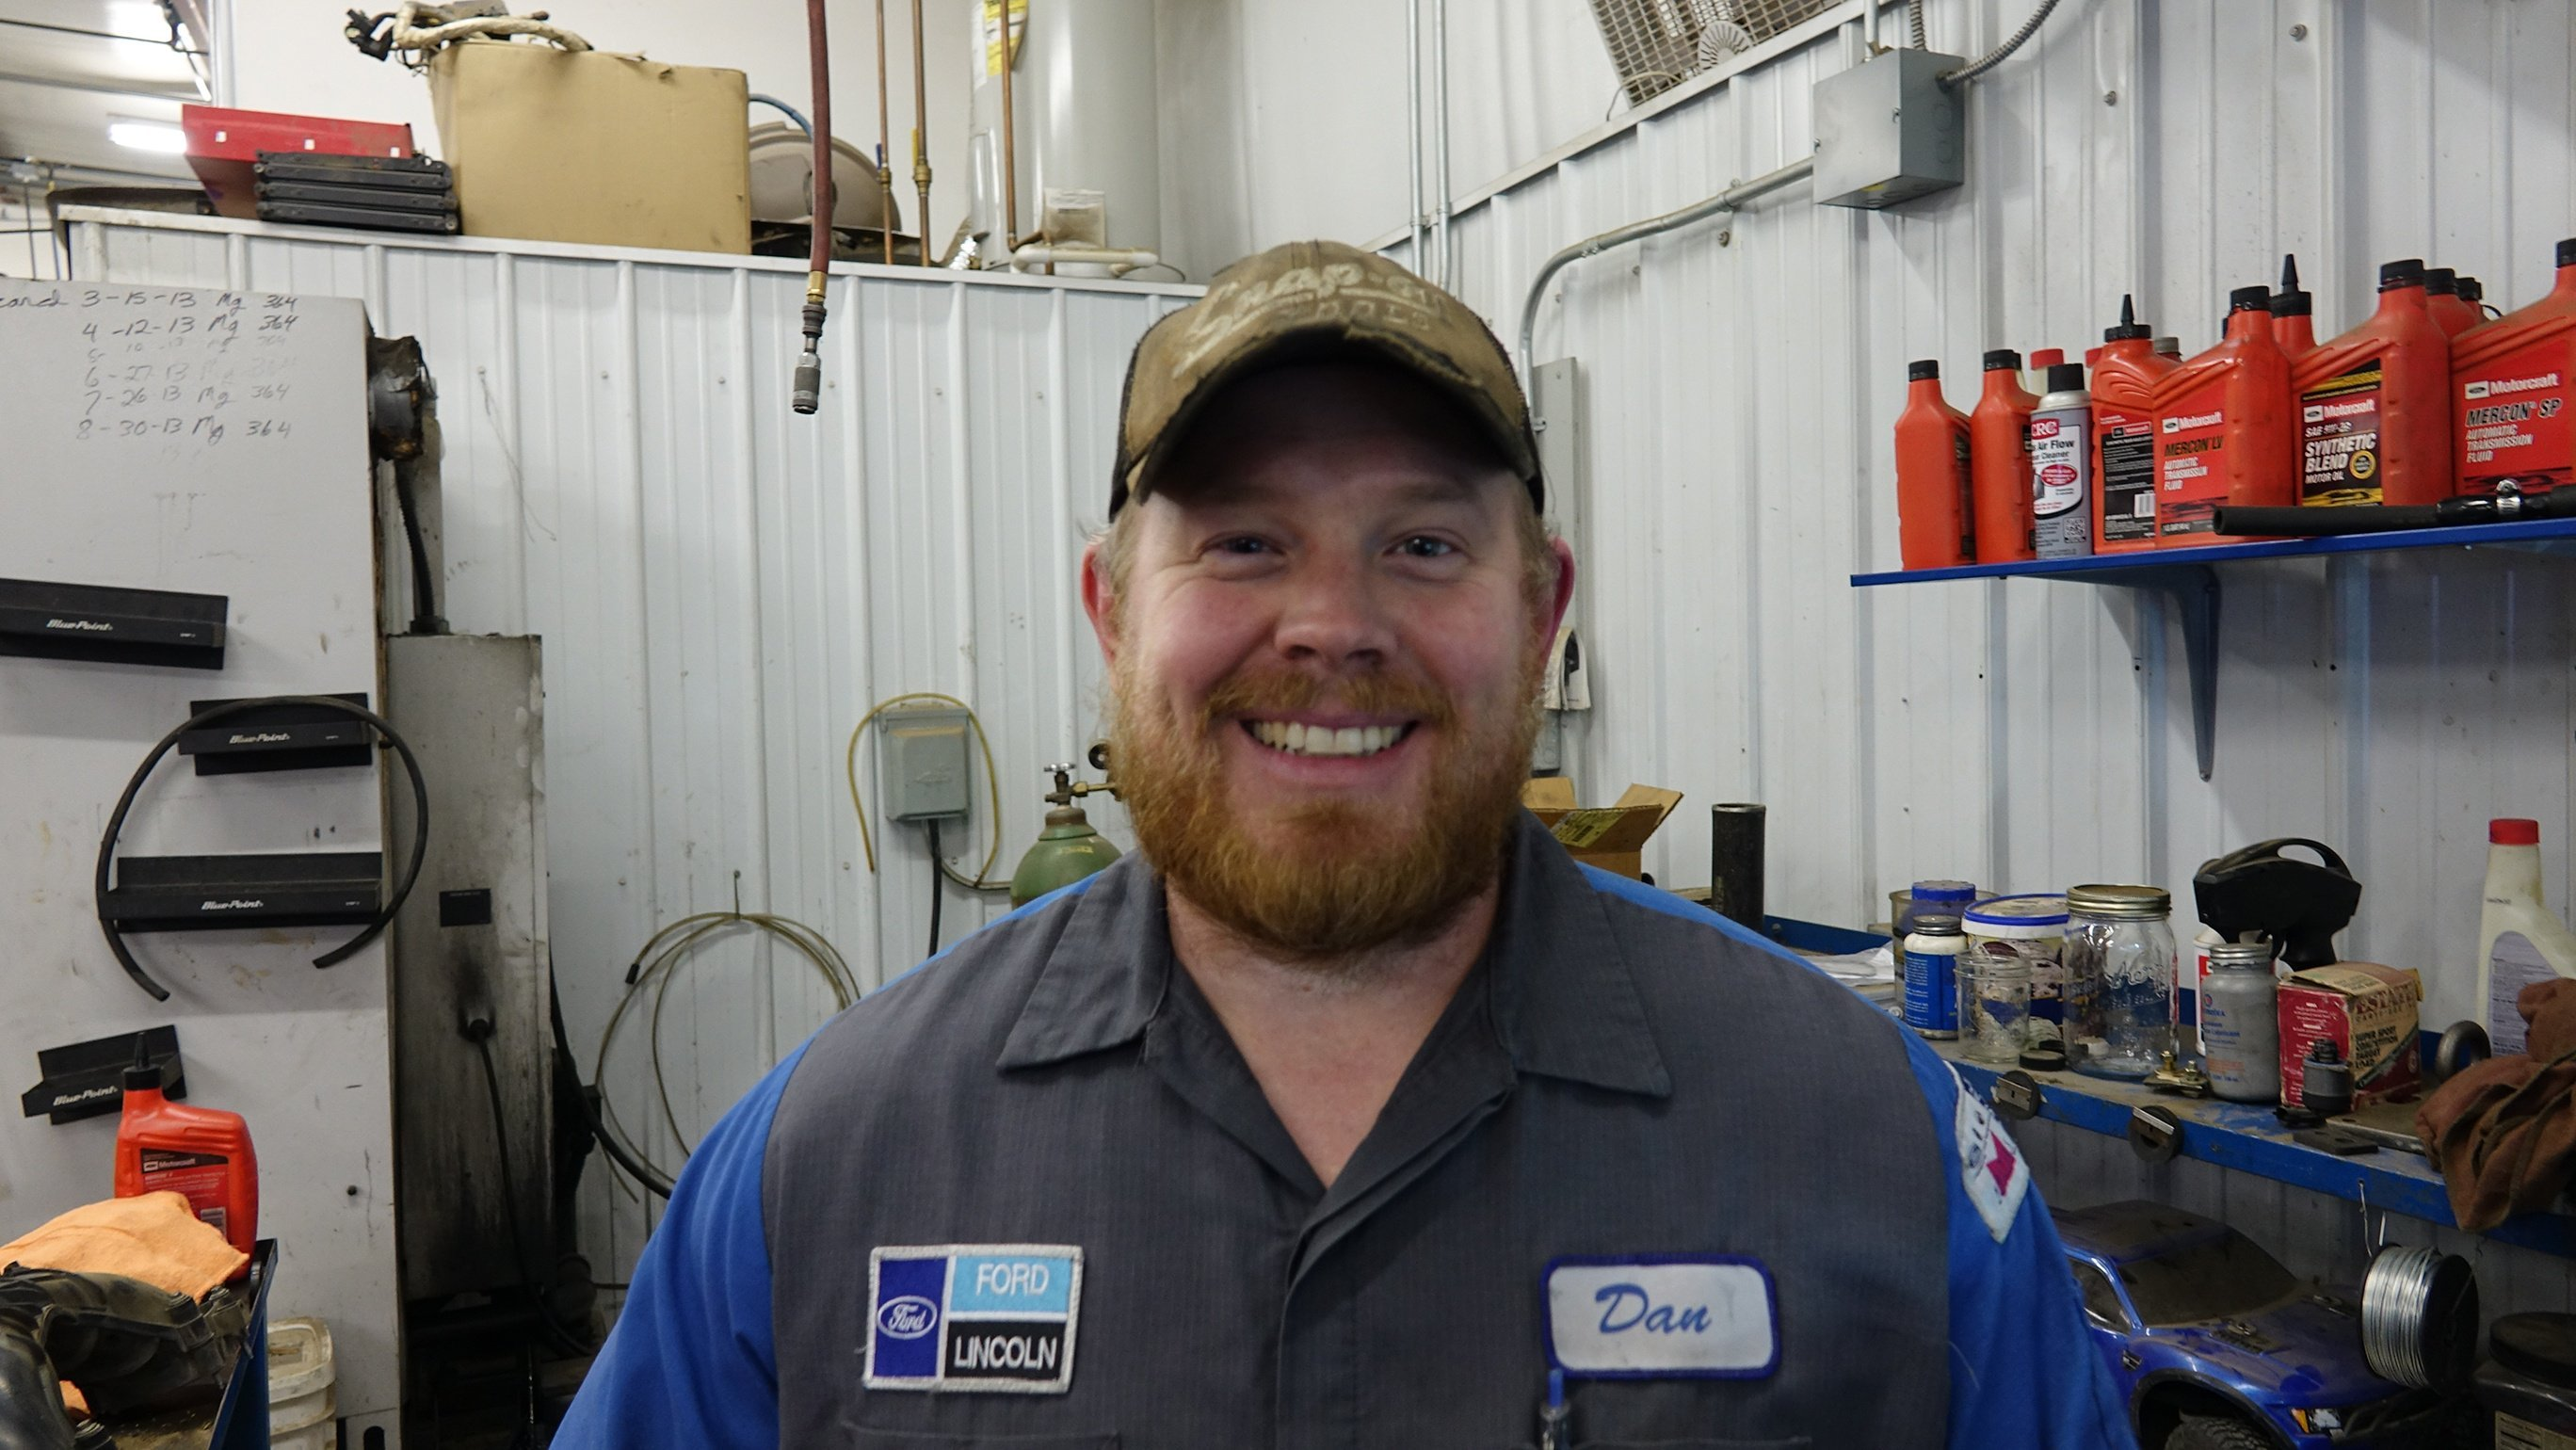 The best Bismarck diesel service comes from people like Dan.